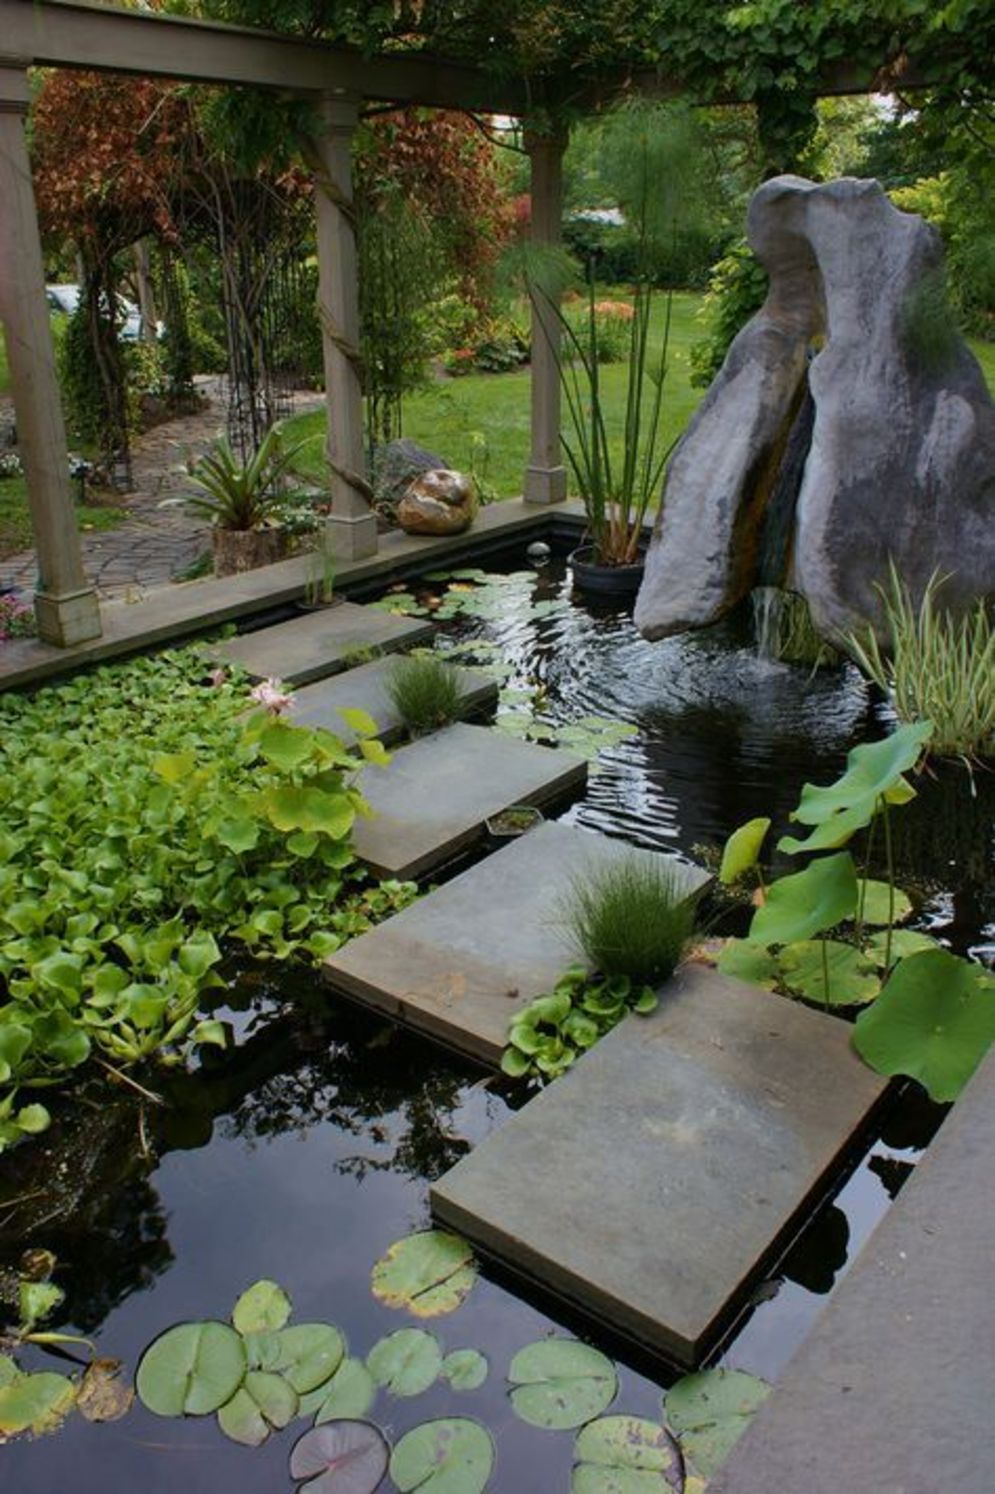 Best water garden style rich of natural accents with stones and aquatic plants compositions Image 10